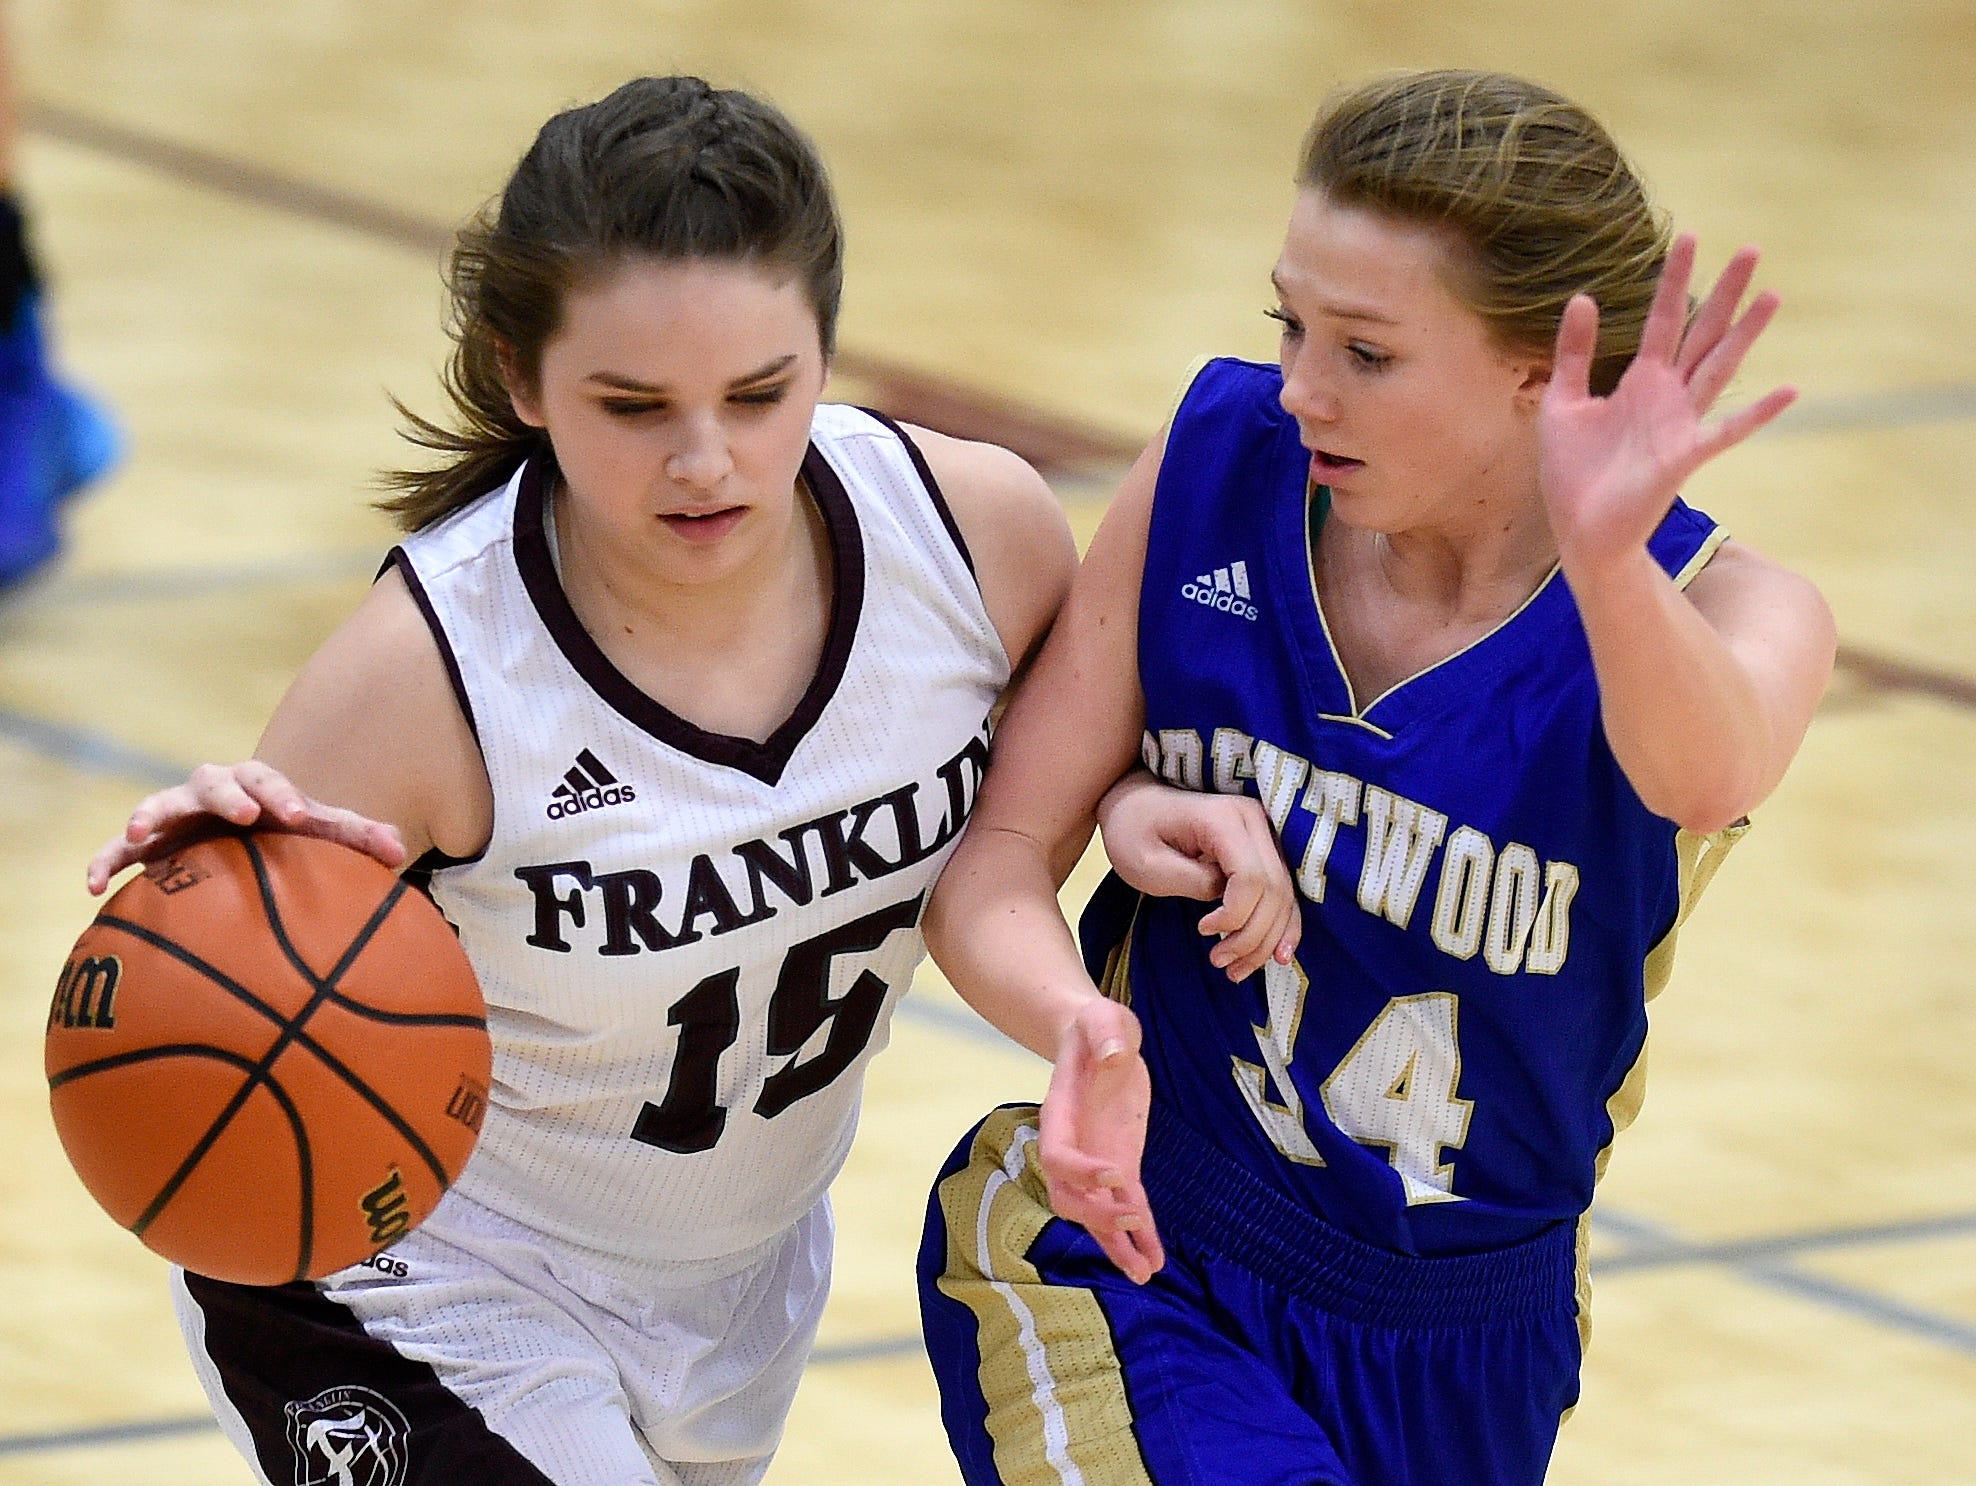 Franklin's Grace Gardner (15) is guarded by Brentwood's Morgan Mevak (34) during the second half at Franklin High School, Tuesday, Feb. 16, 2016, in Franklin, Tenn.